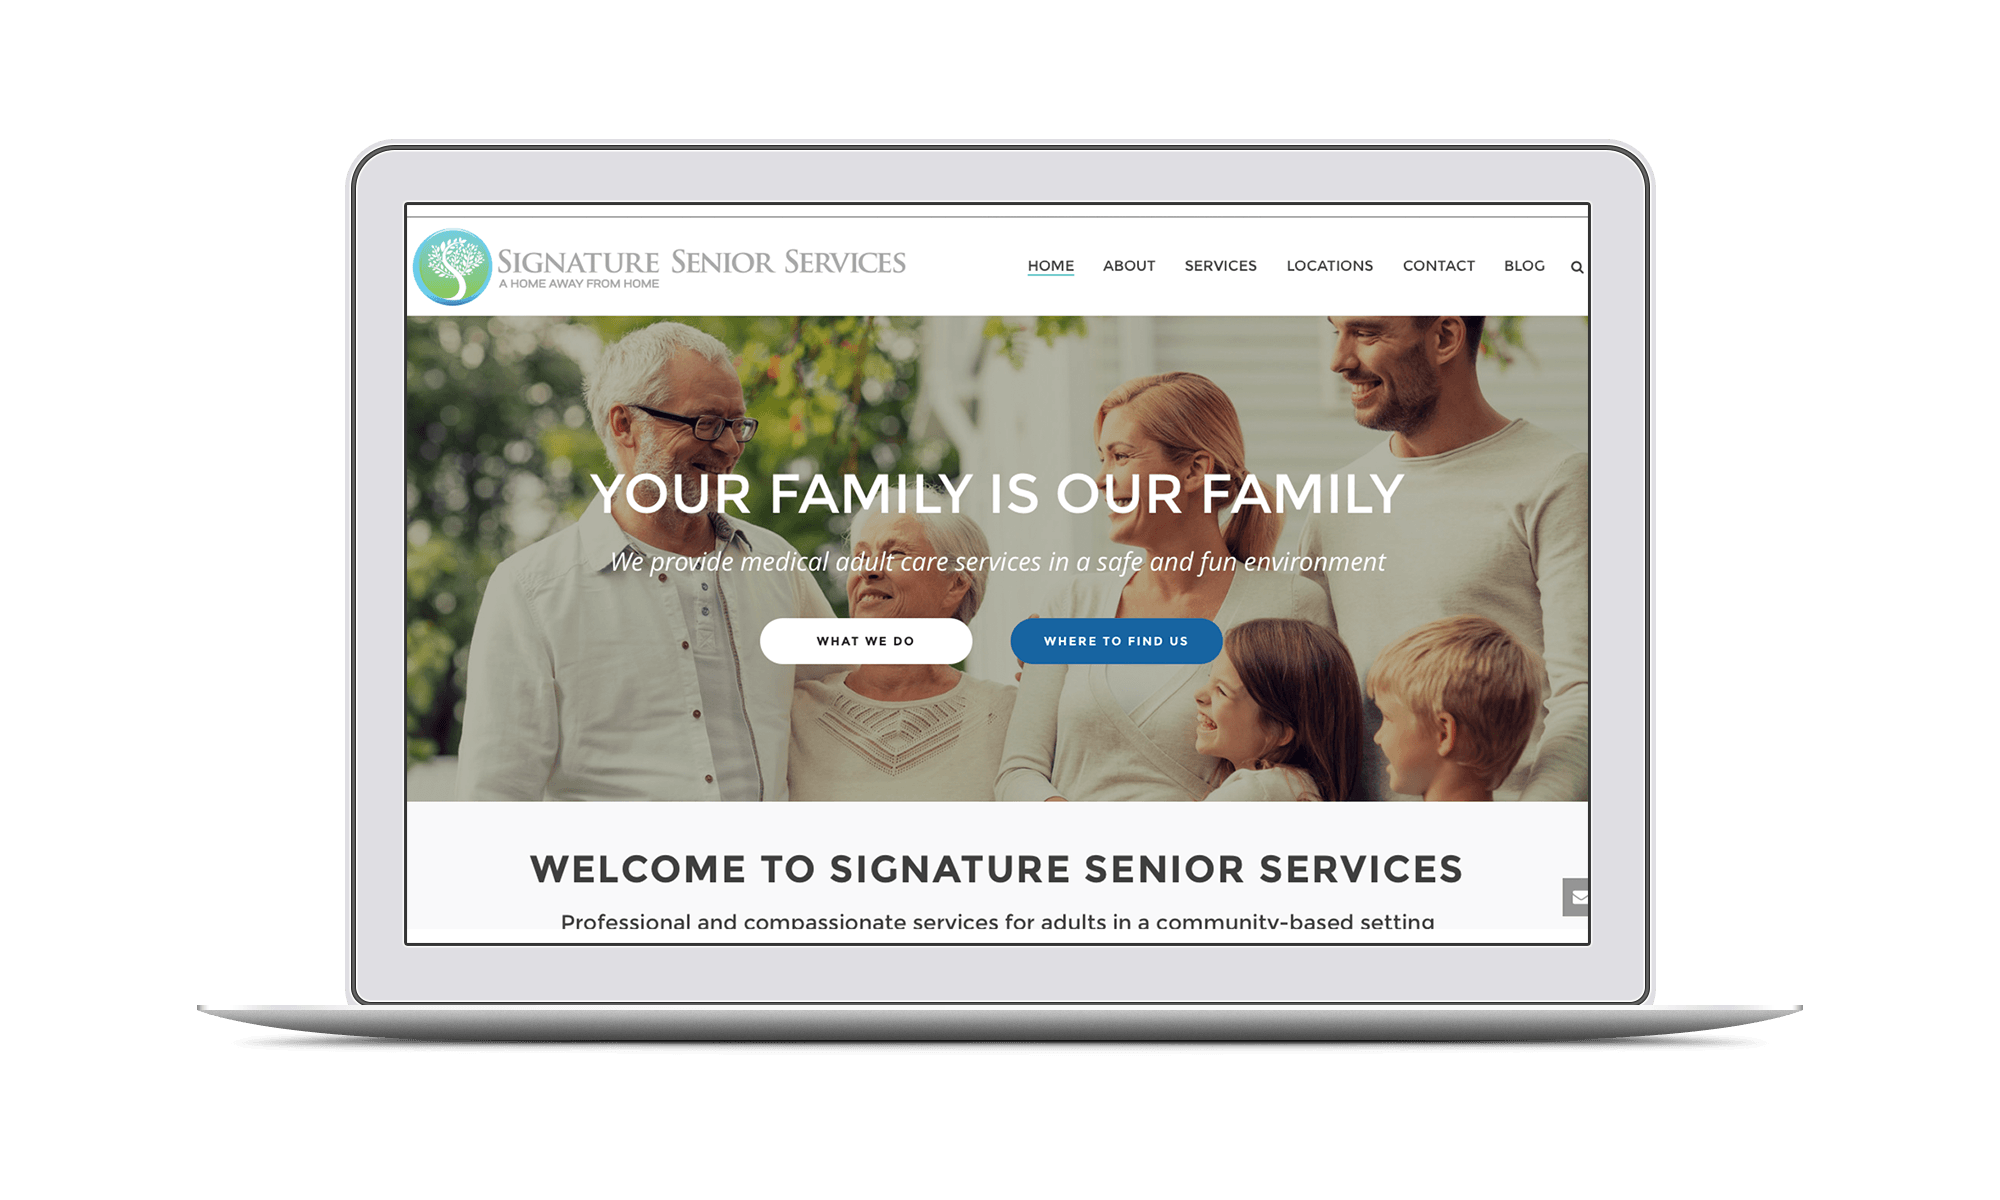 Signature Senior Services